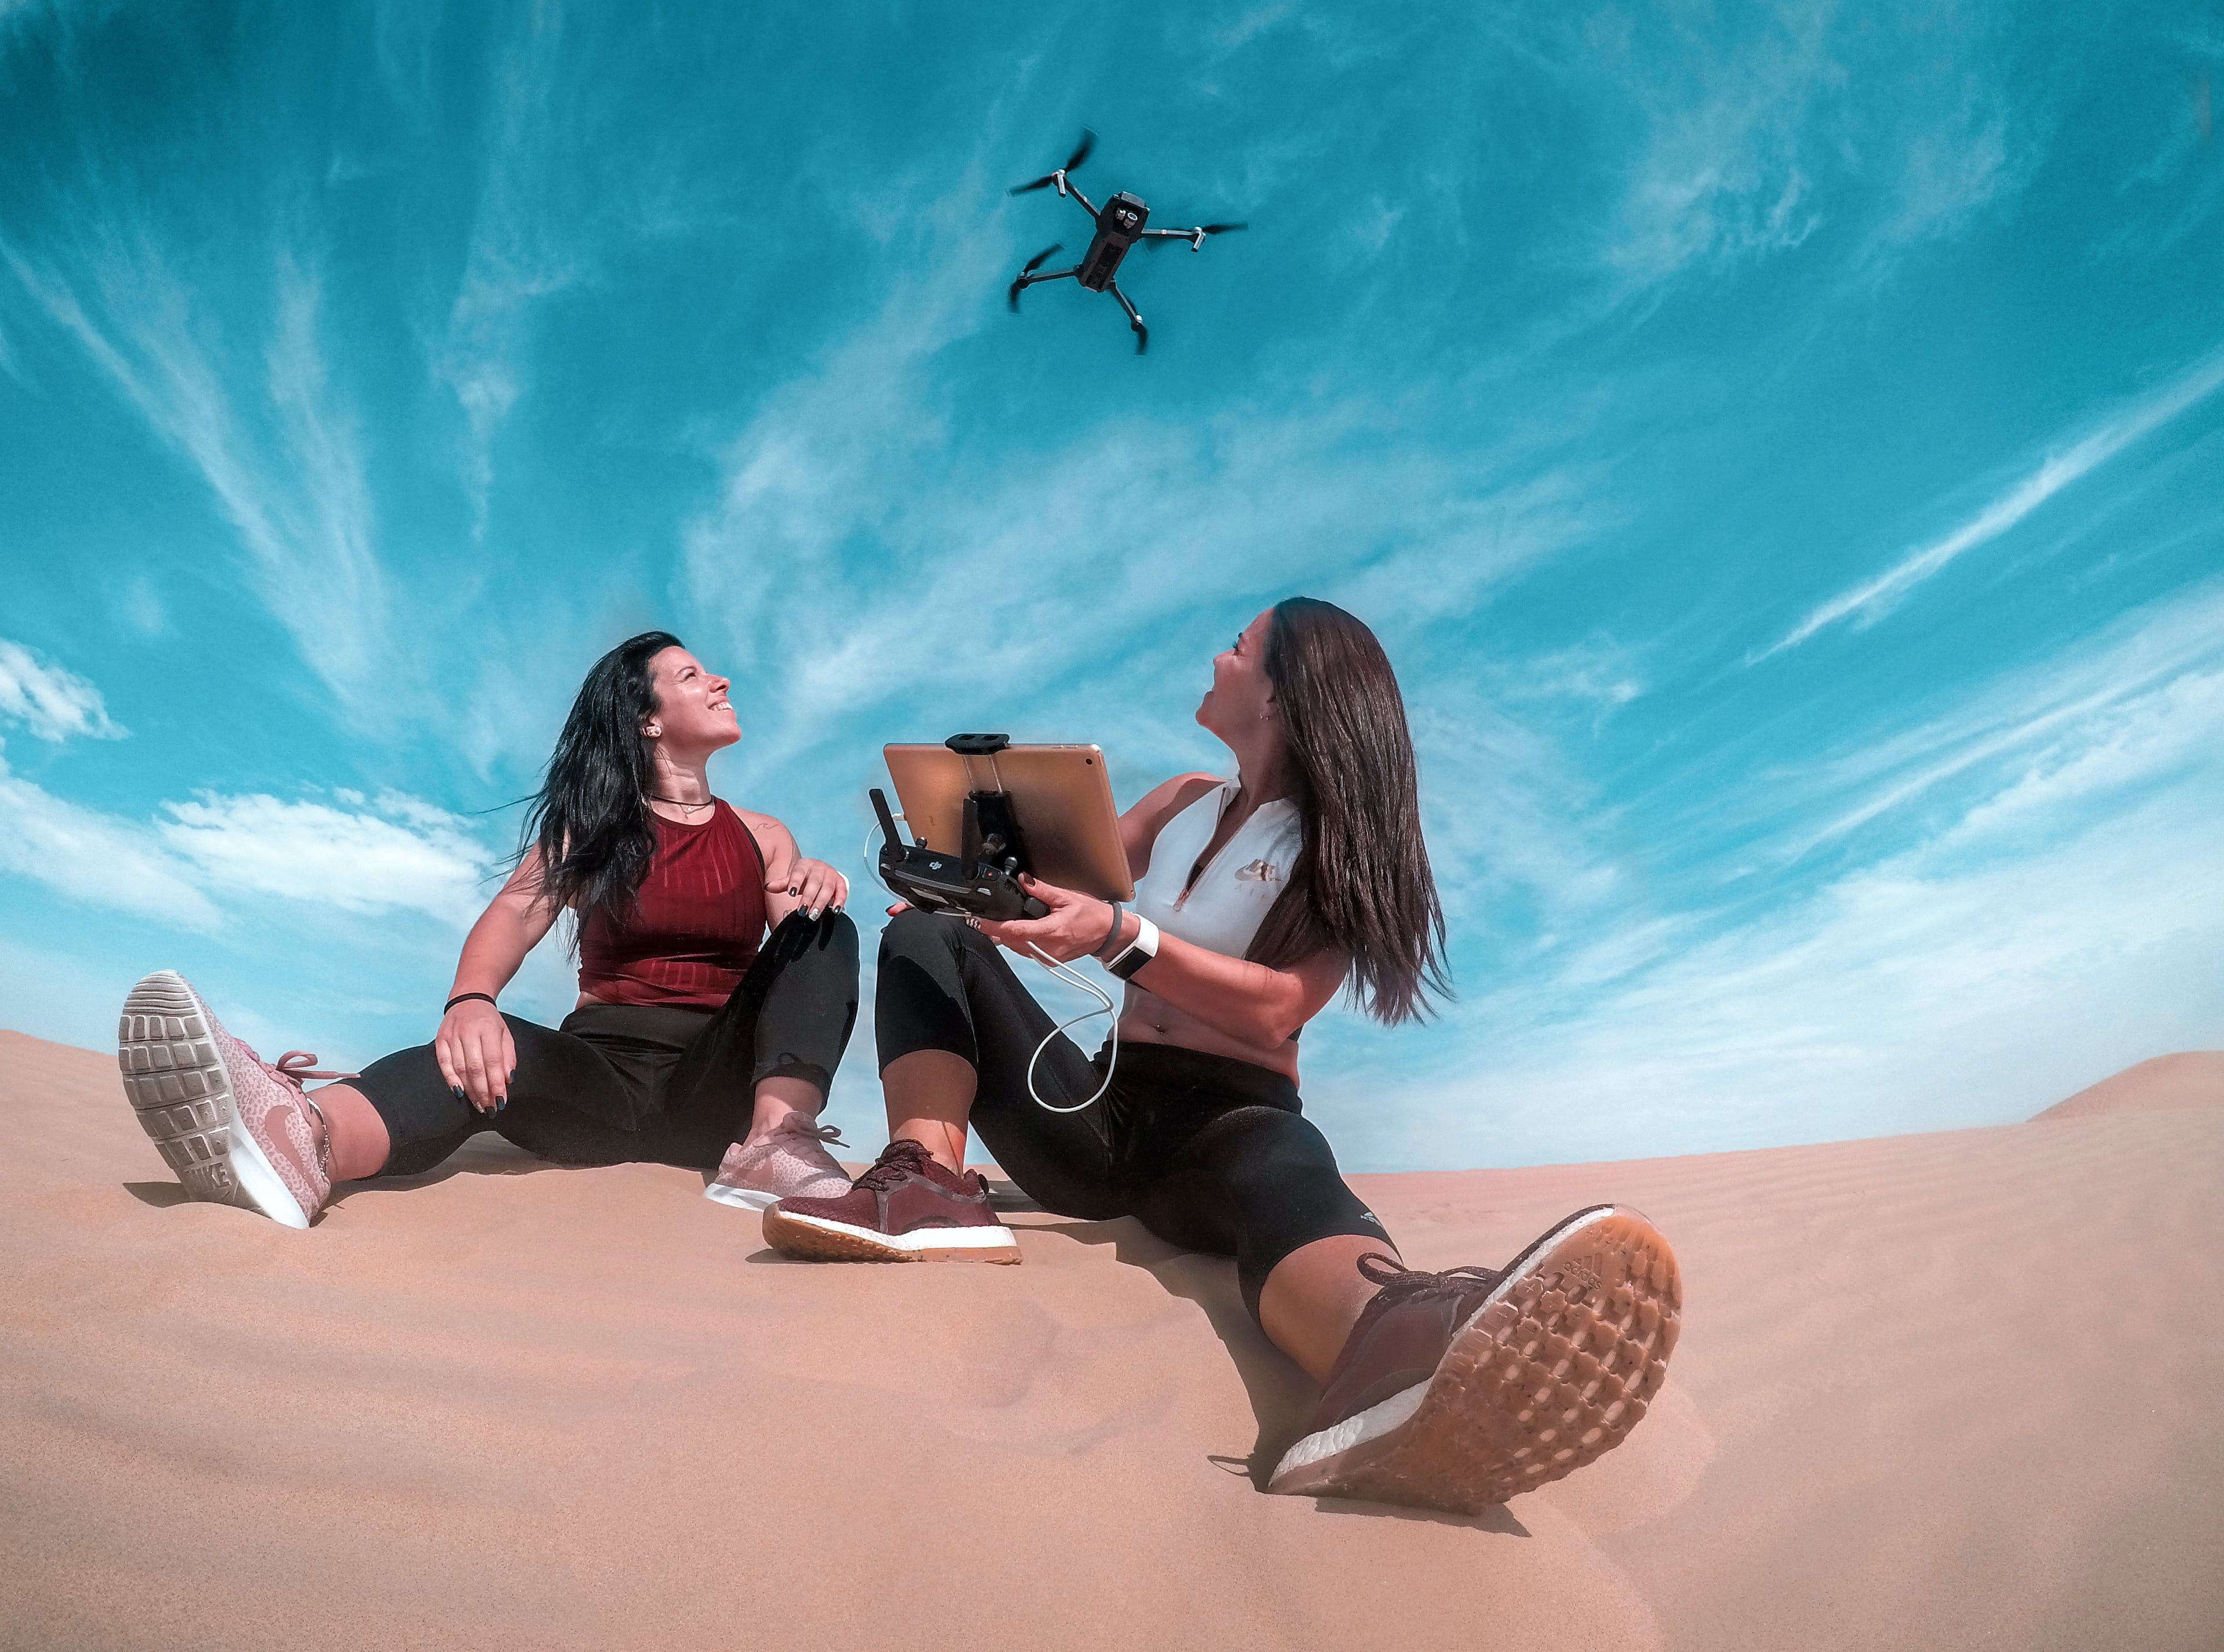 Two Woman Sitting On Sand While Playing Drone